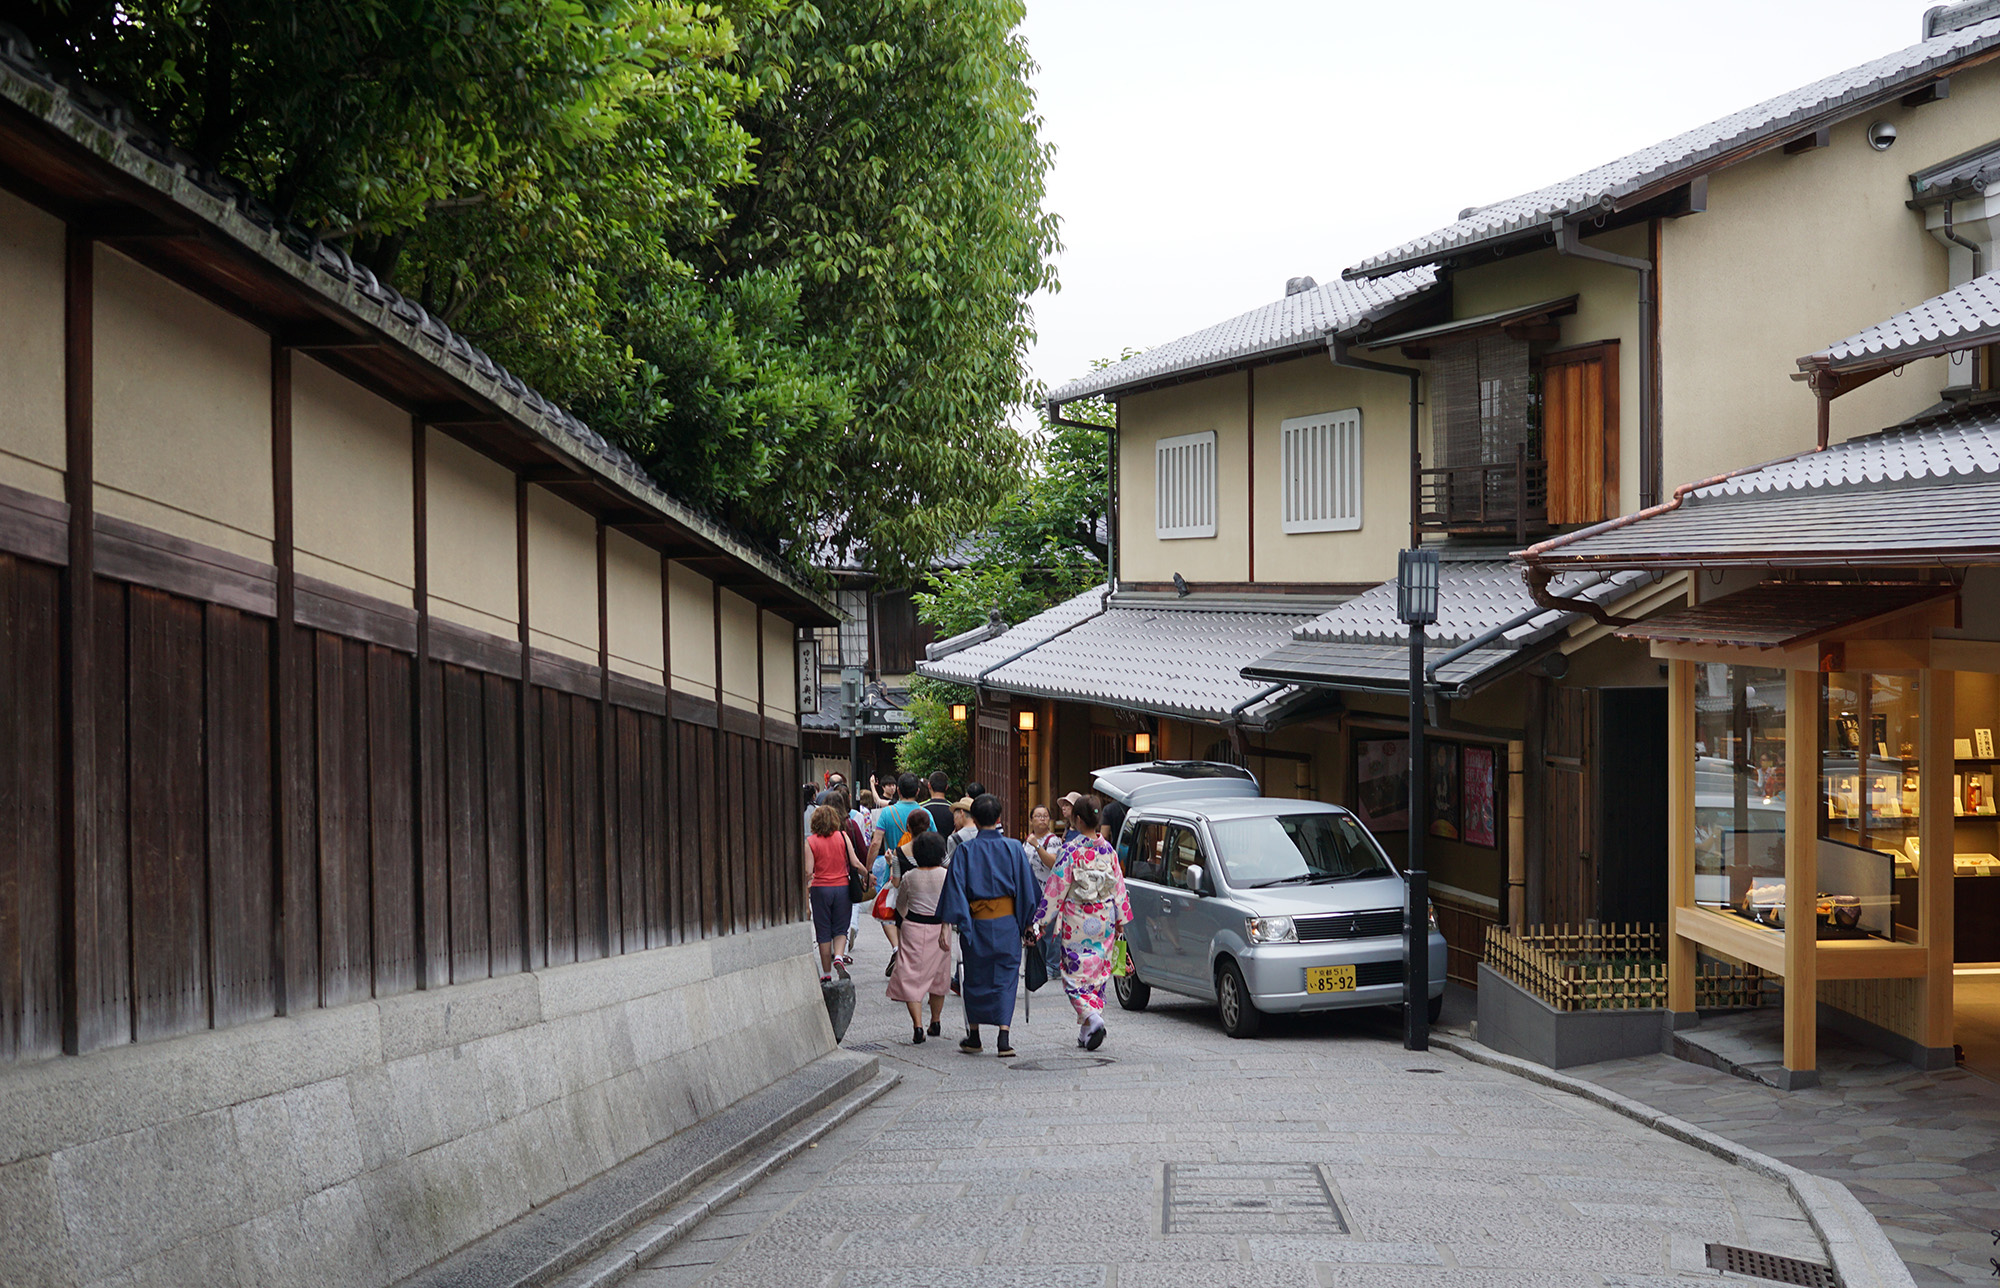 walking around Higashiyama